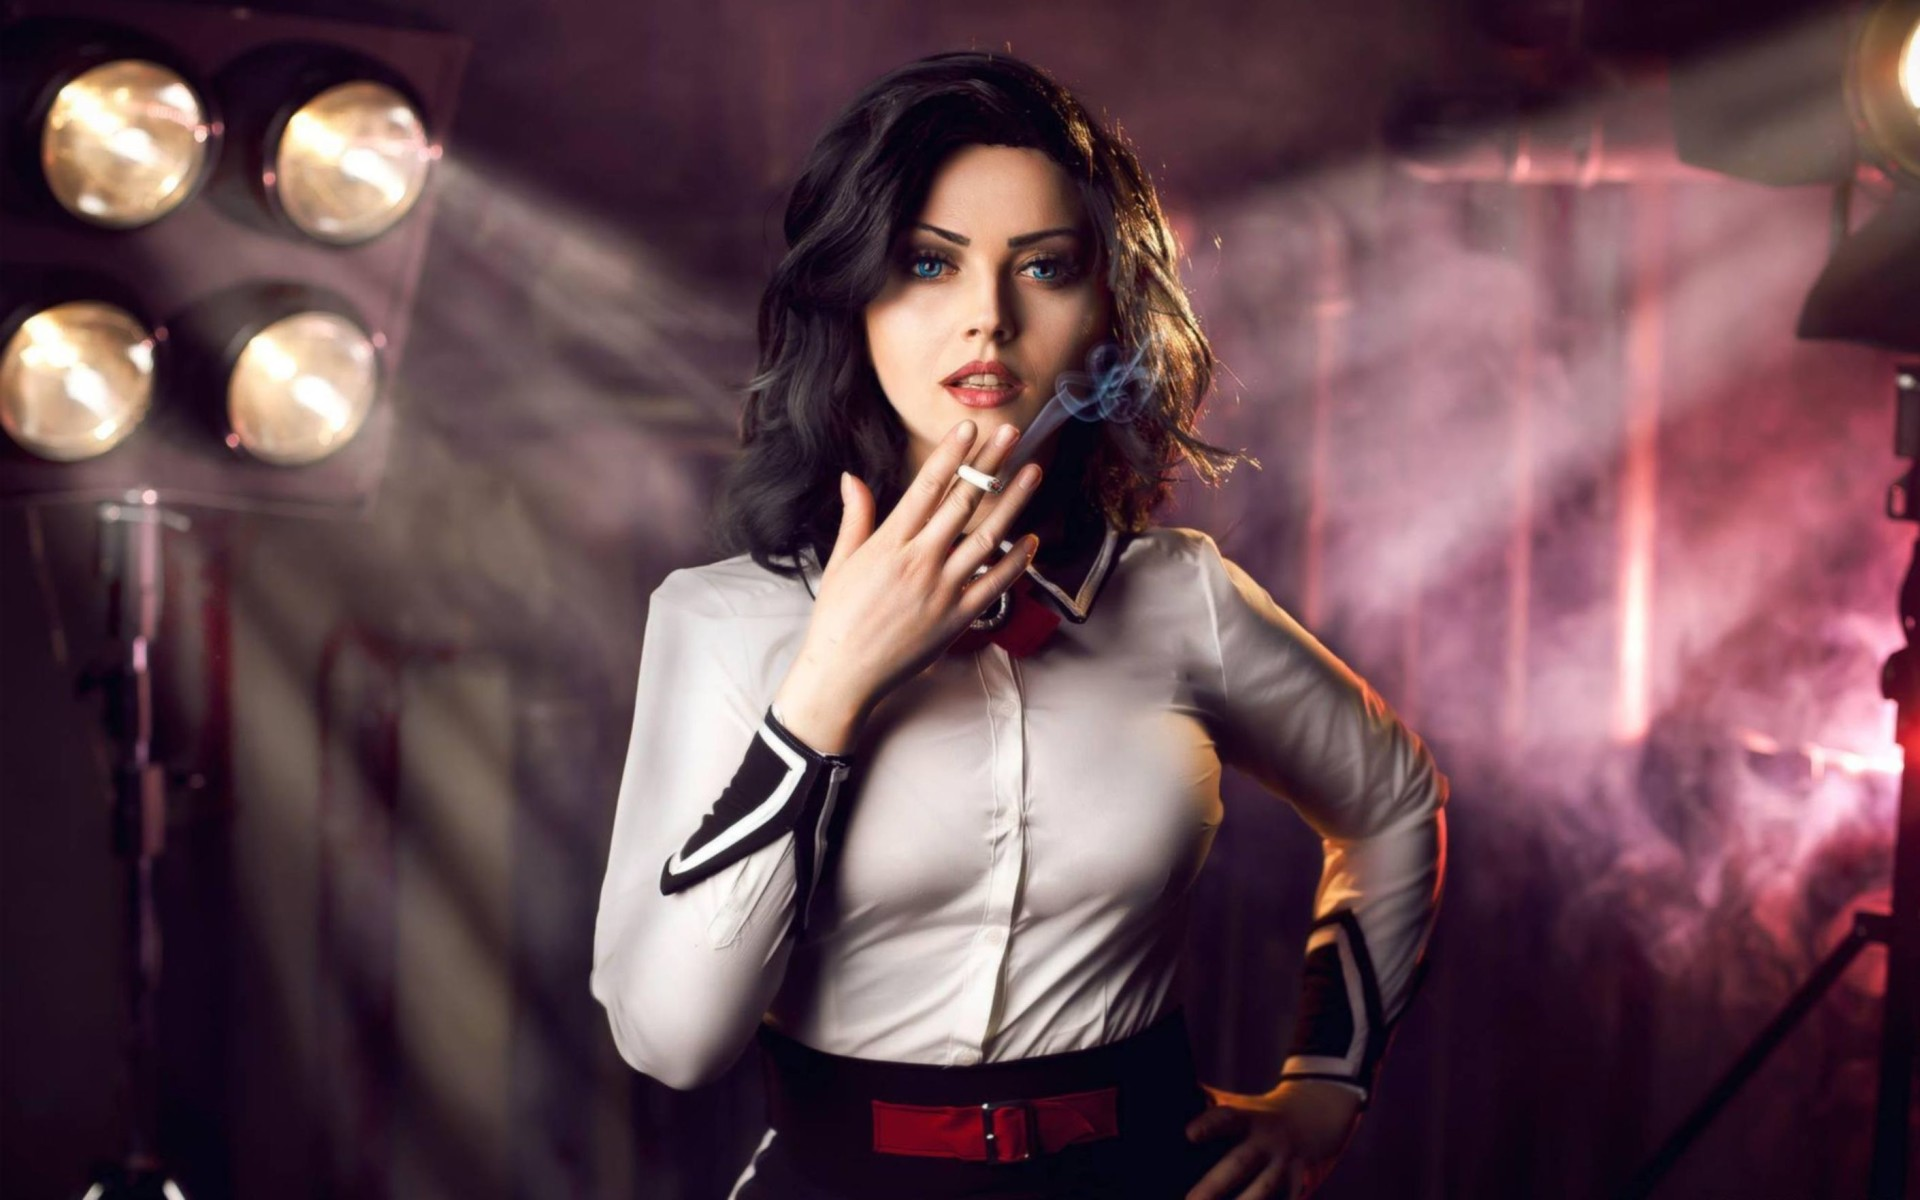 Bioshock Infinite Elizabeth Wallpaper